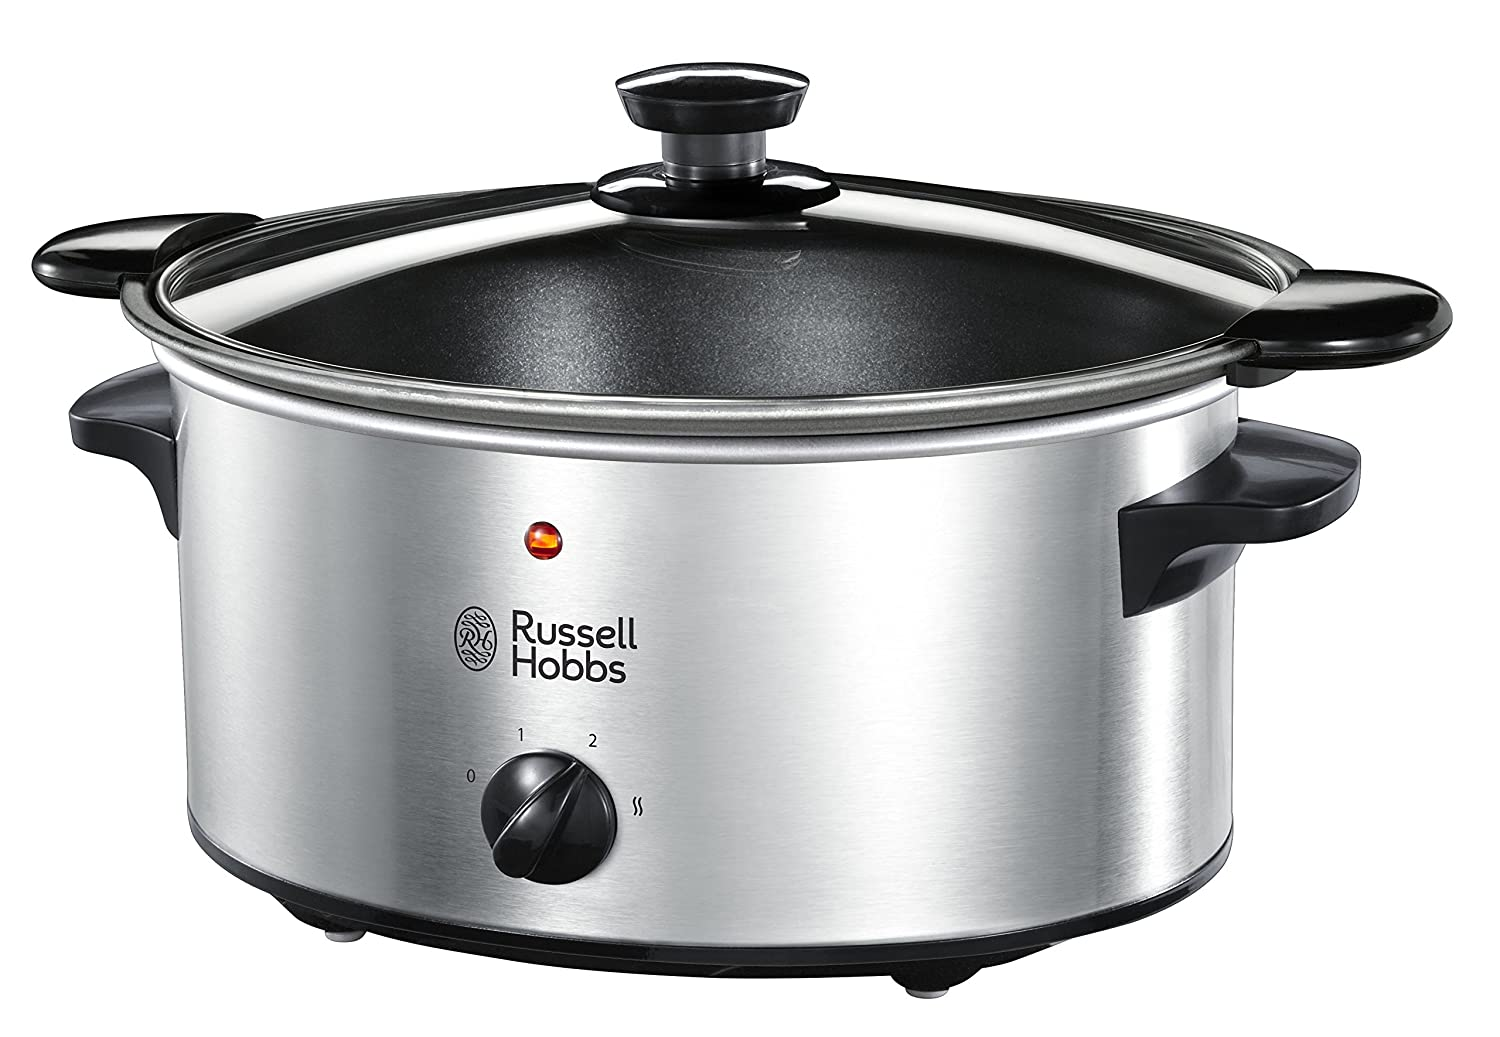 Amazon.de: Russell Hobbs 22740-56 Schongarer Cook@Home, Crock Pot ...